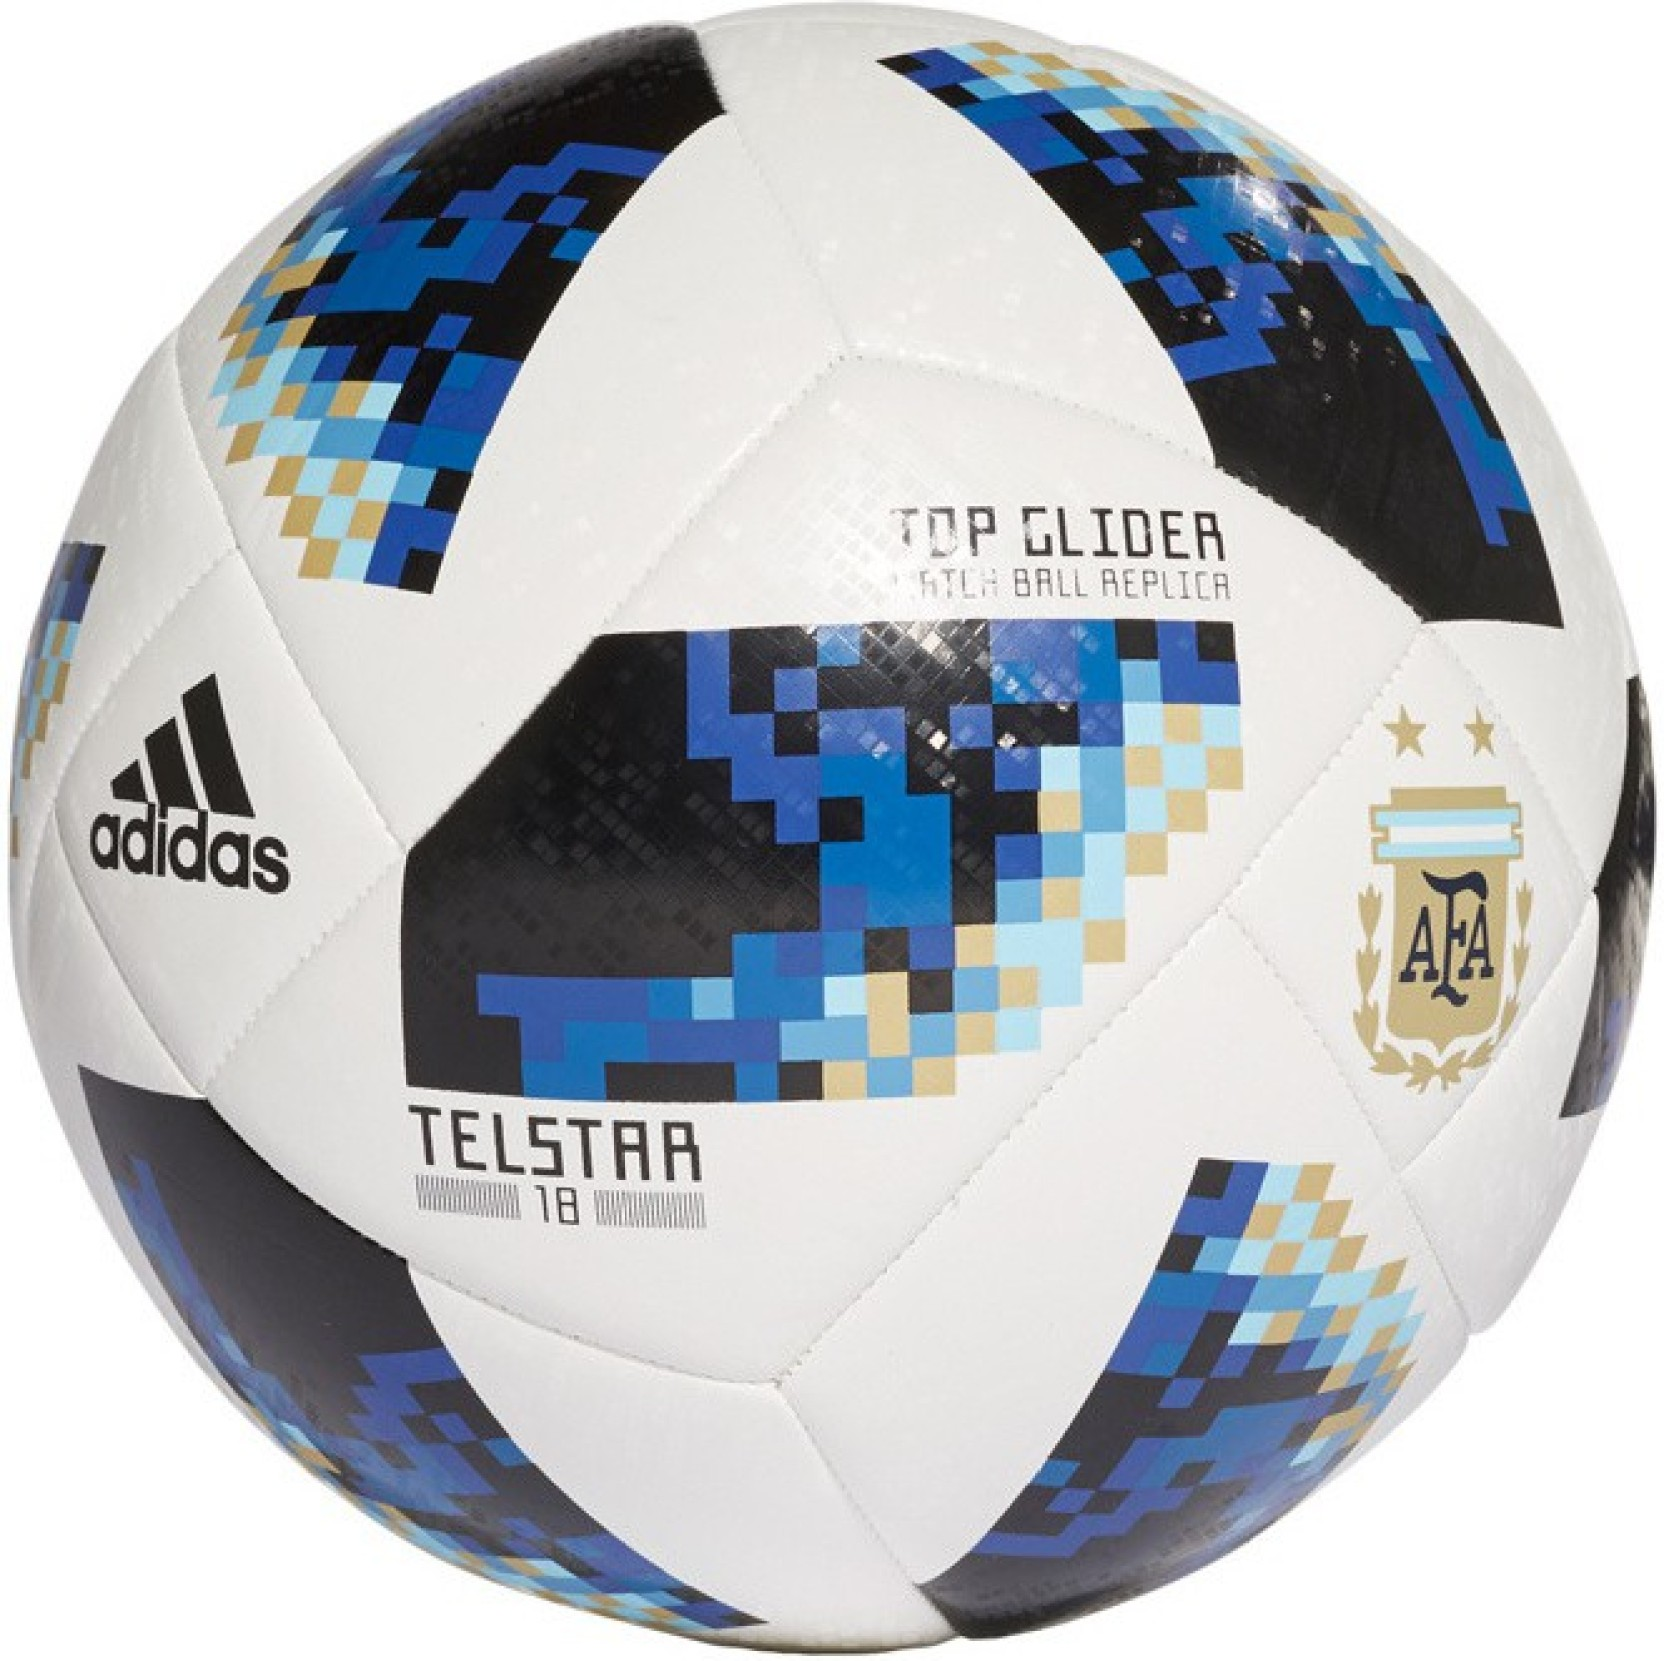 df8d3fbd2 ADIDAS FIFA WORLD CUP Argentina Supporters GLIDER BALL Football - Size: 5  (Pack of 1, Multicolor)